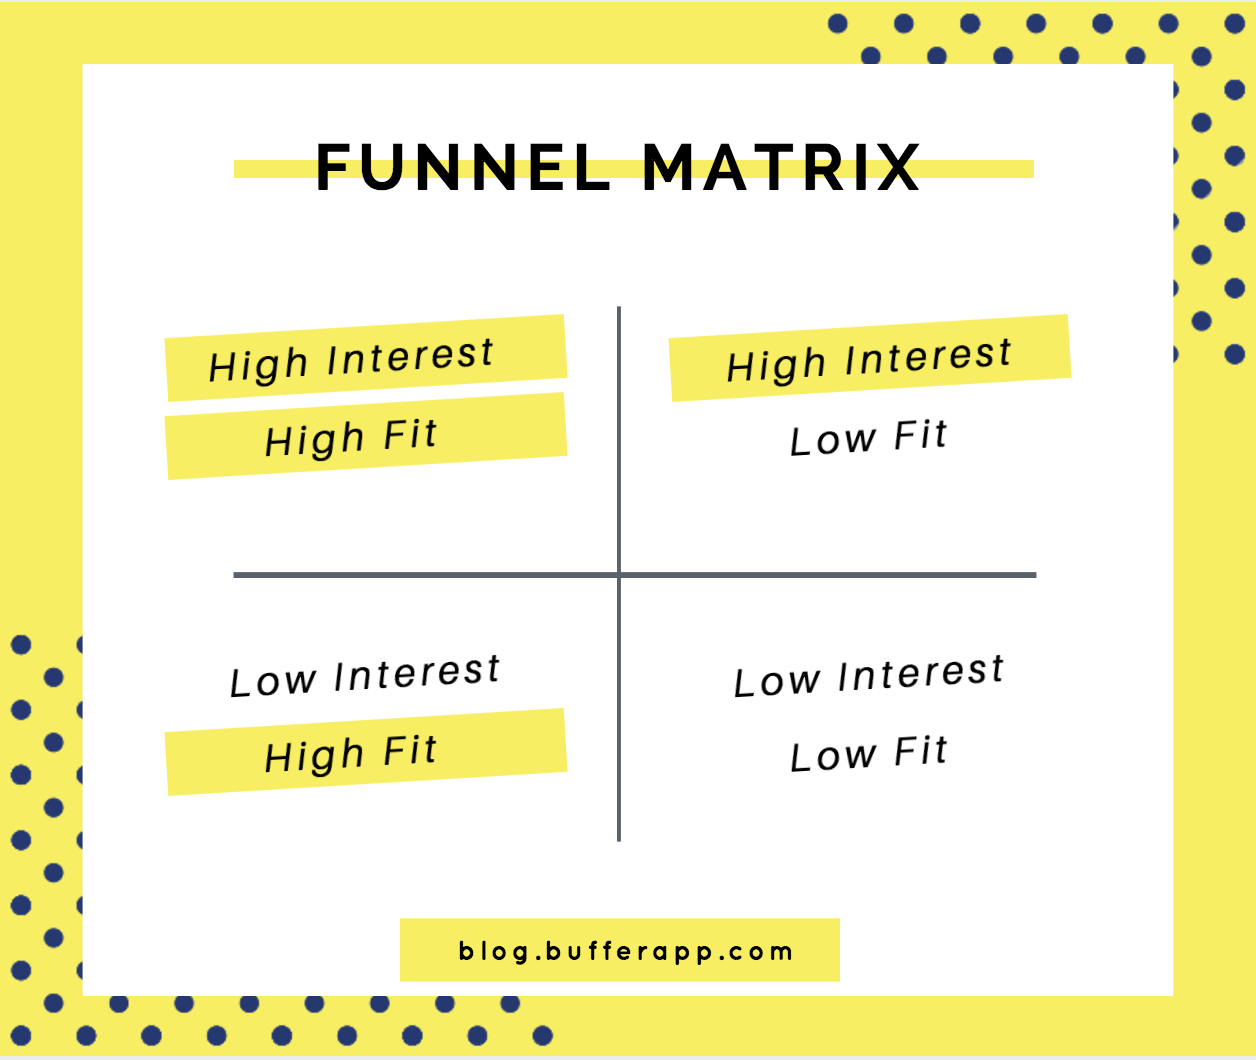 funnel matrix